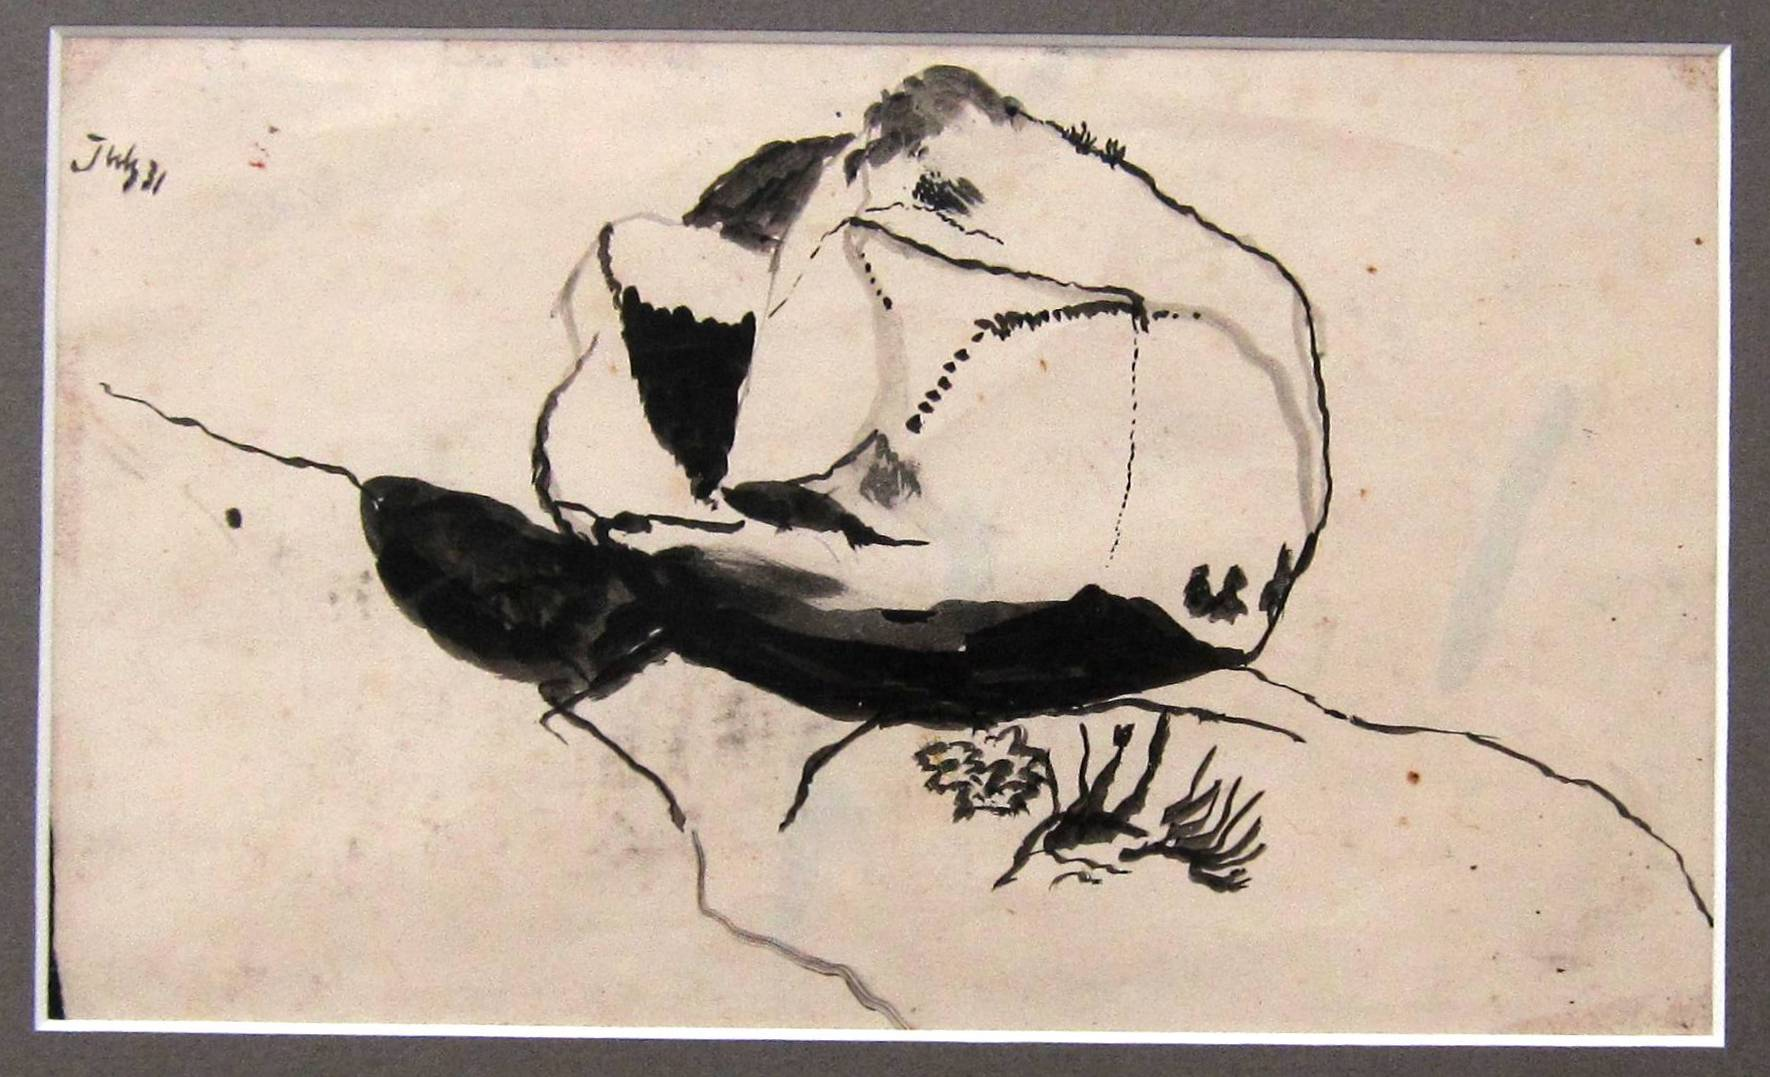 Lot 34 - GRAHAM SUTHERLAND [1903-80]. Small Boulder, 1940. ink drawing. titled and dated by the artist on the